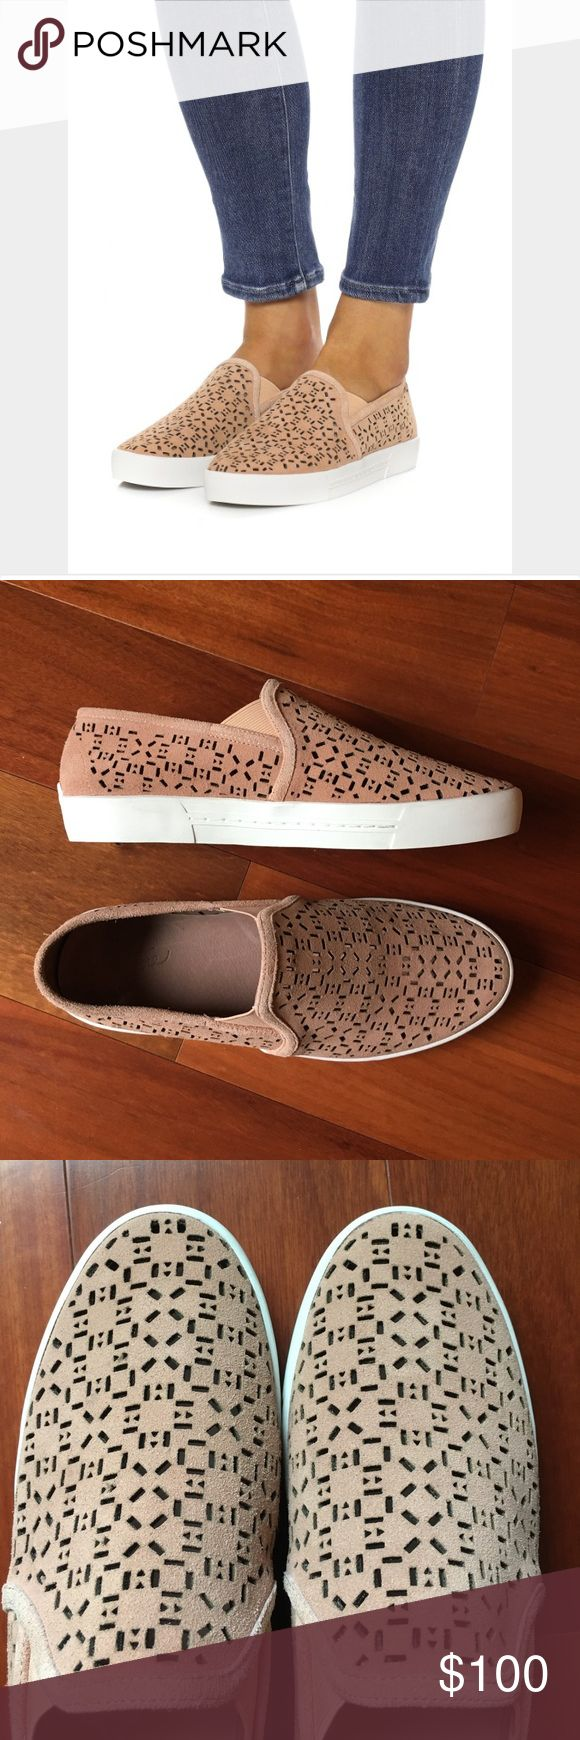 NWT Joie sneakers NWT Joie Huxley laser cut suede sneakers in clay. Never been worn. Box included. EU size 38= 7.5-8 Joie Shoes Sneakers